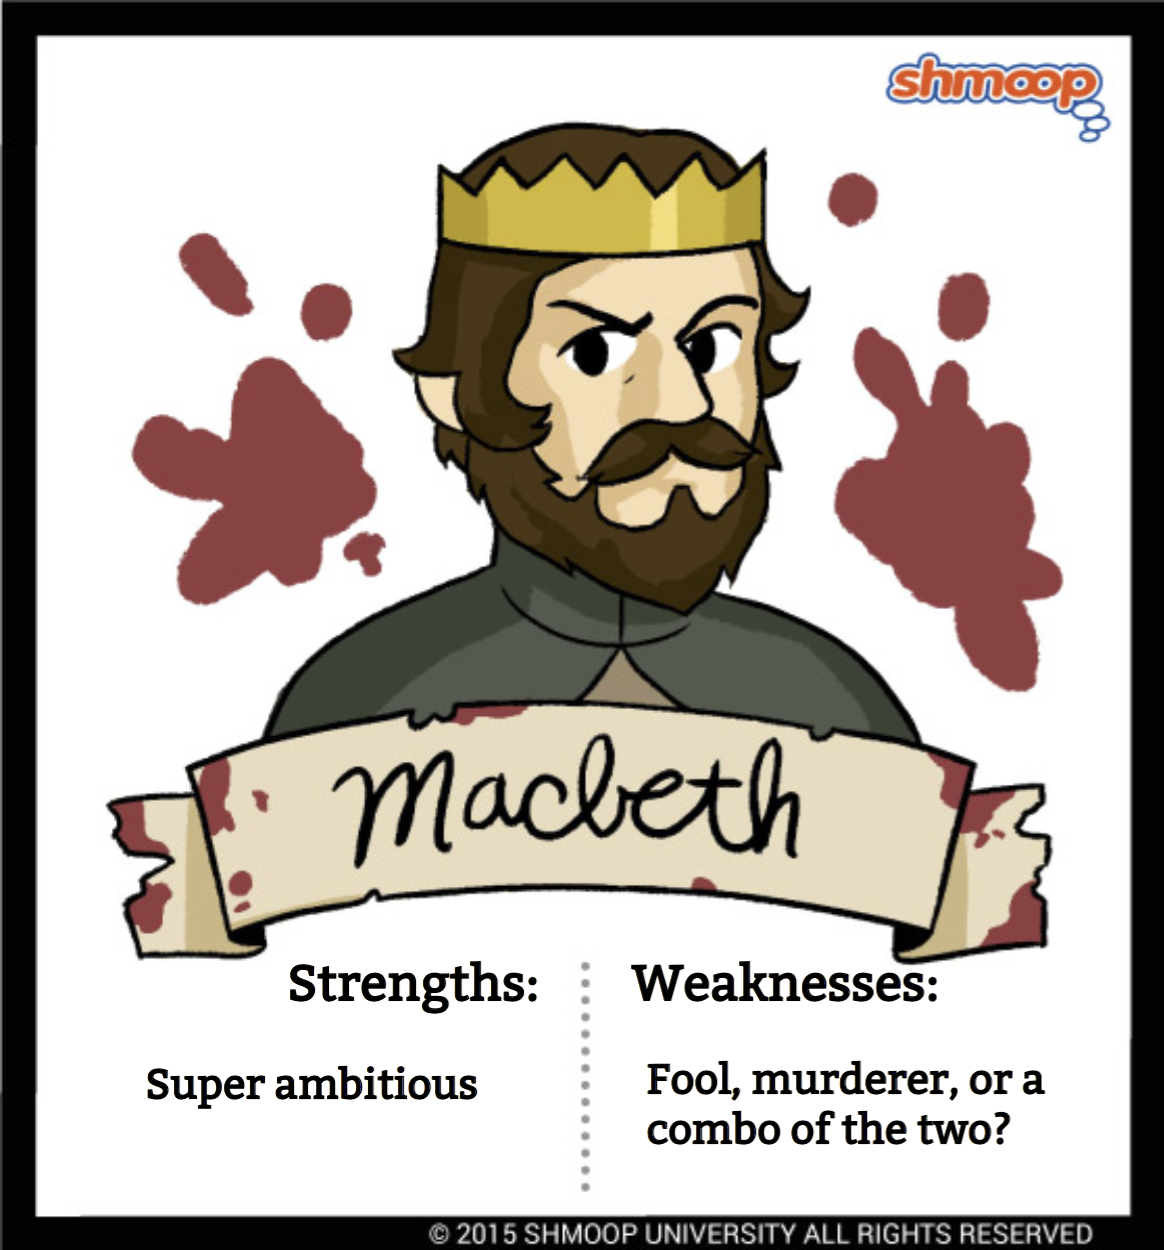 an analysis of characters in macbeth by william shakespeare Detailed analysis of characters in william shakespeare's macbeth learn all about how the characters in macbeth such as macbeth and lady macbeth contribute to the story and how they fit into the plot.